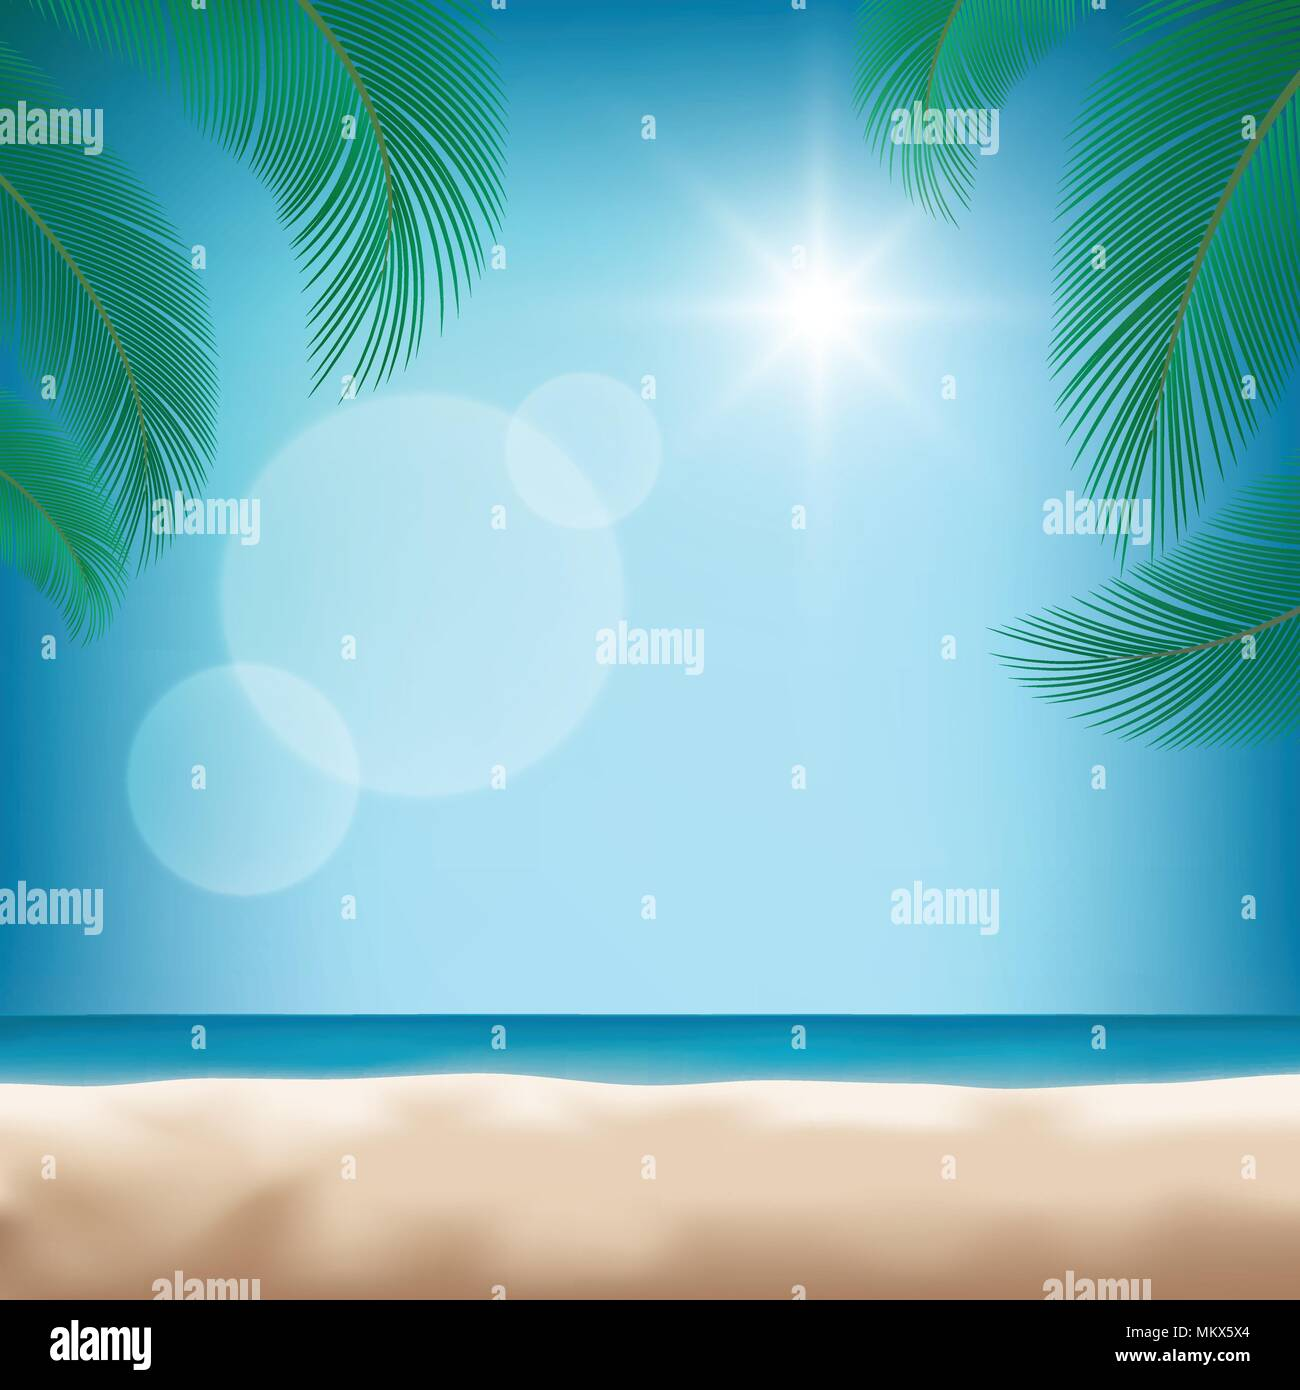 nature summer tropical backgrounds with green palm leaf or coconut